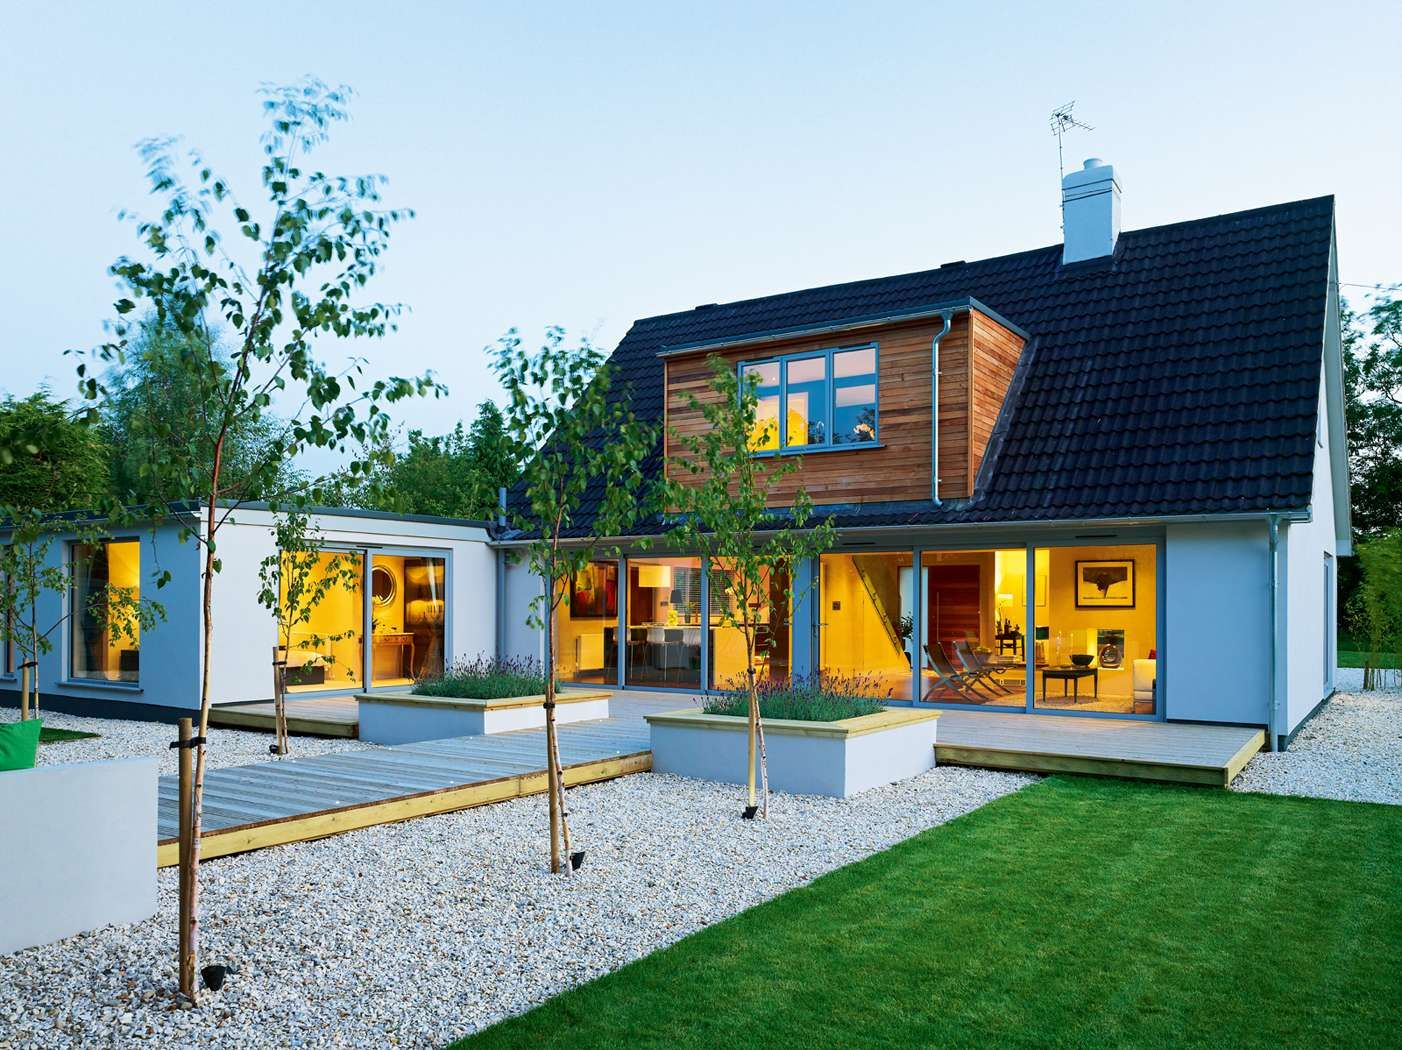 Modern Bungalow Remodel Homebuilding Renovating Single Story Garage Style Extension House